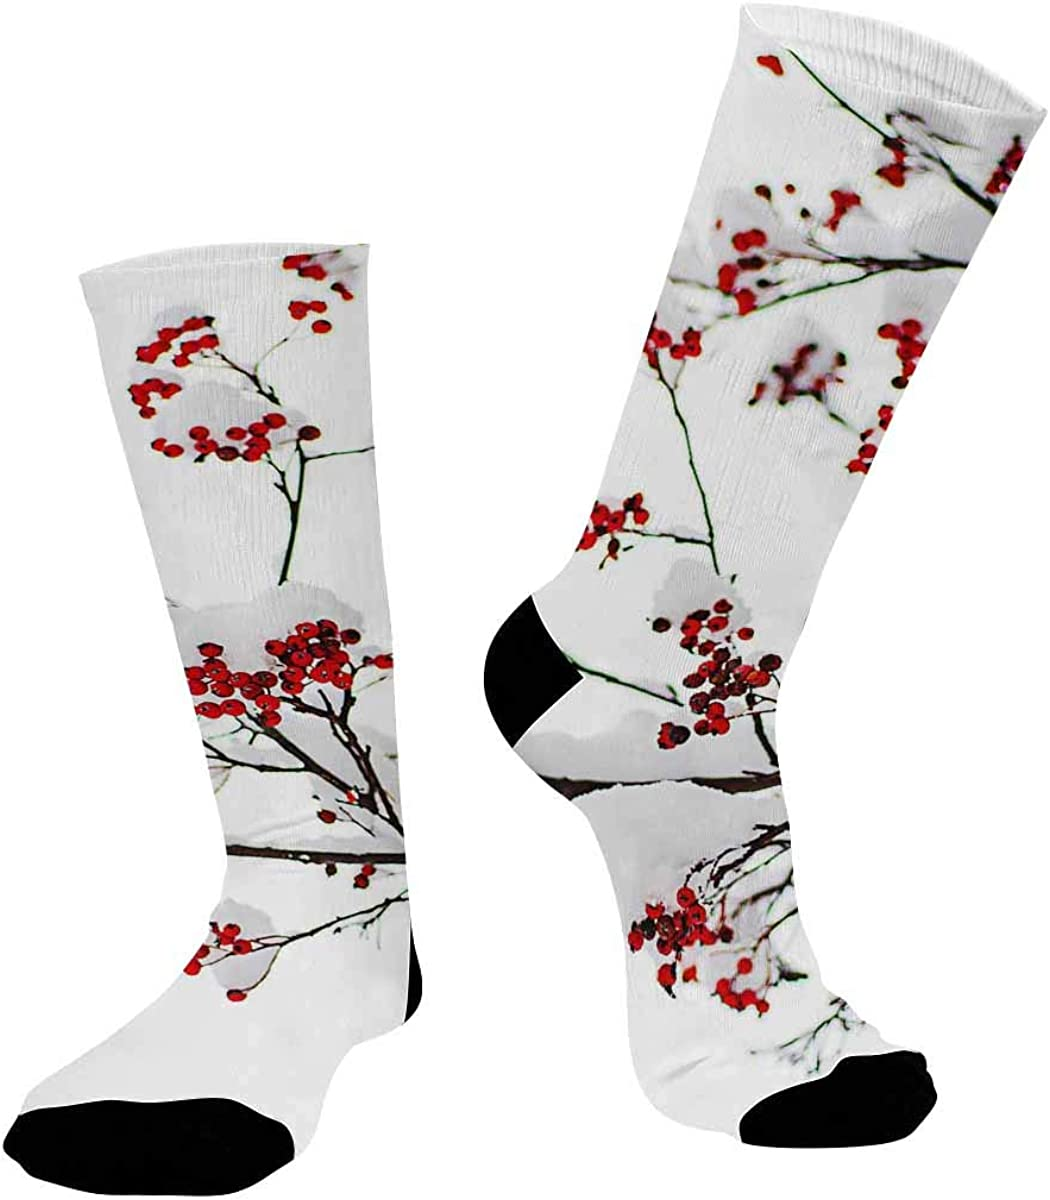 INTERESTPRINT Sublimated Crew Casual Athletic Socks Red Rowan Berry